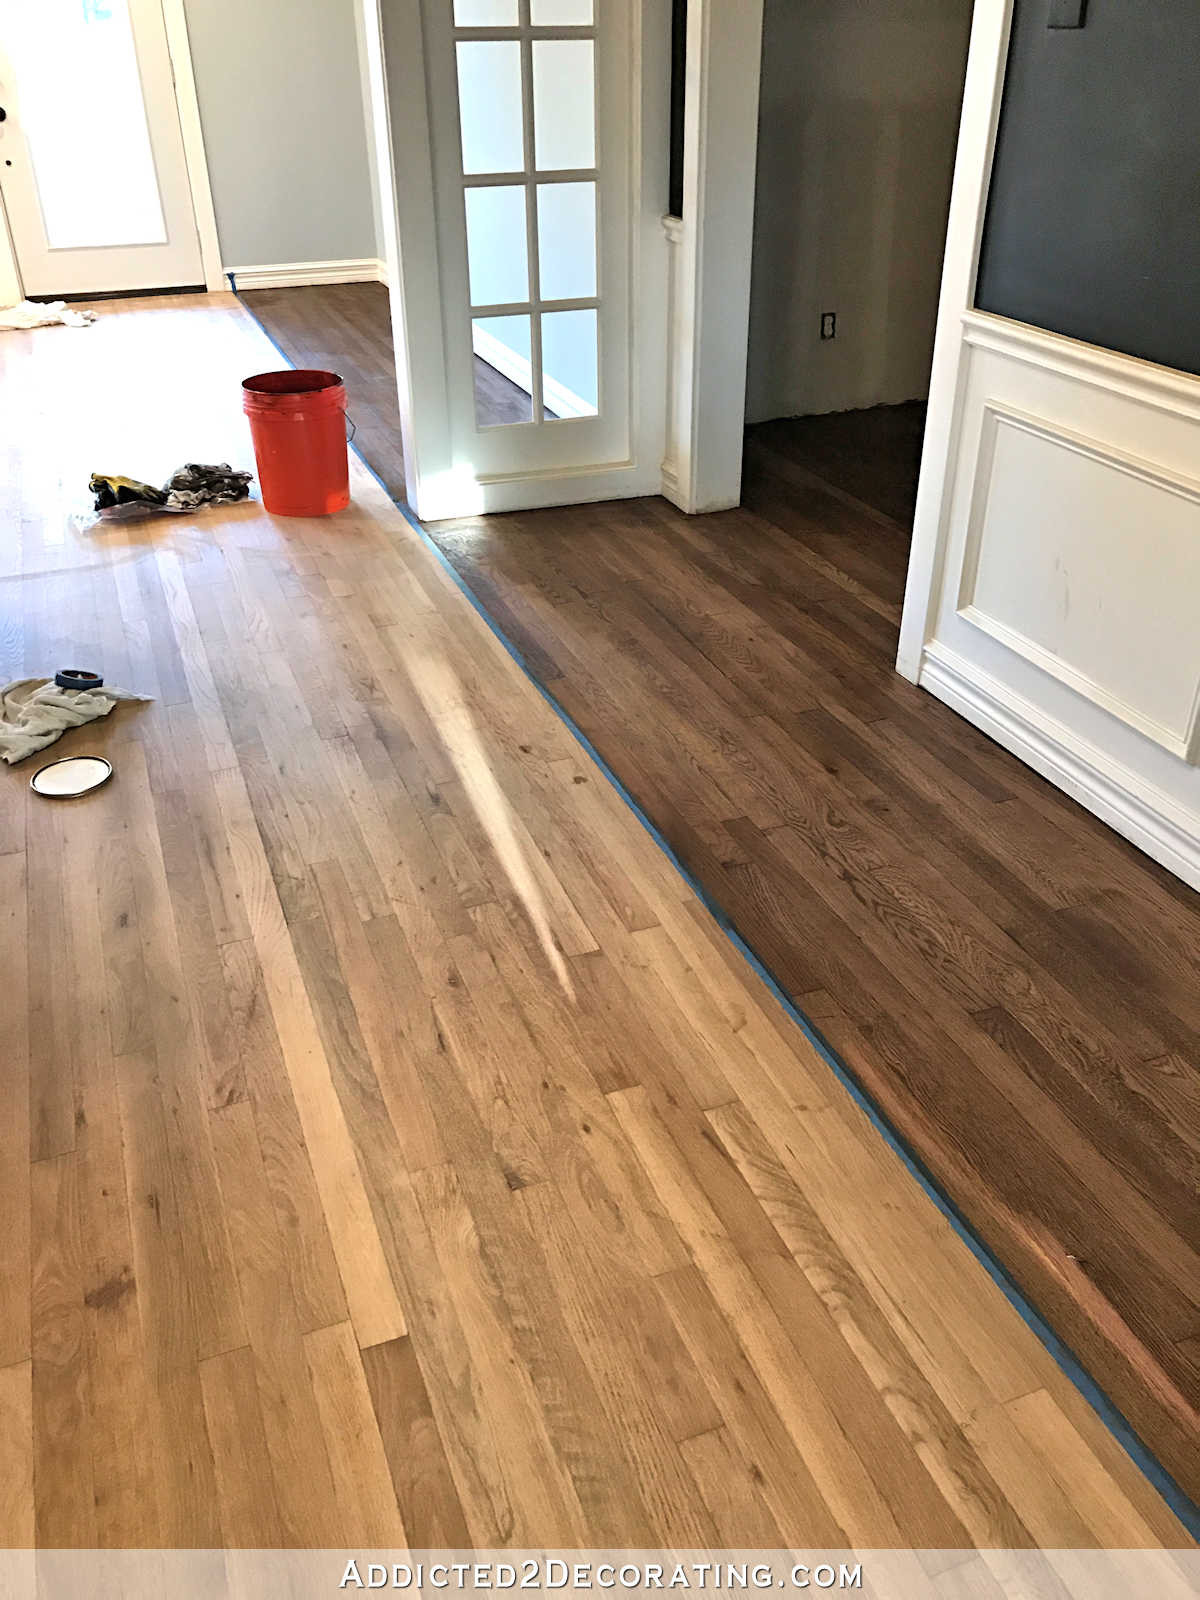 Do It Yourself Hardwood Floor Refinishing without Sanding Of Adventures In Staining My Red Oak Hardwood Floors Products Process Intended for Staining Red Oak Hardwood Floors 6 Stain On Partial Floor In Entryway and Music